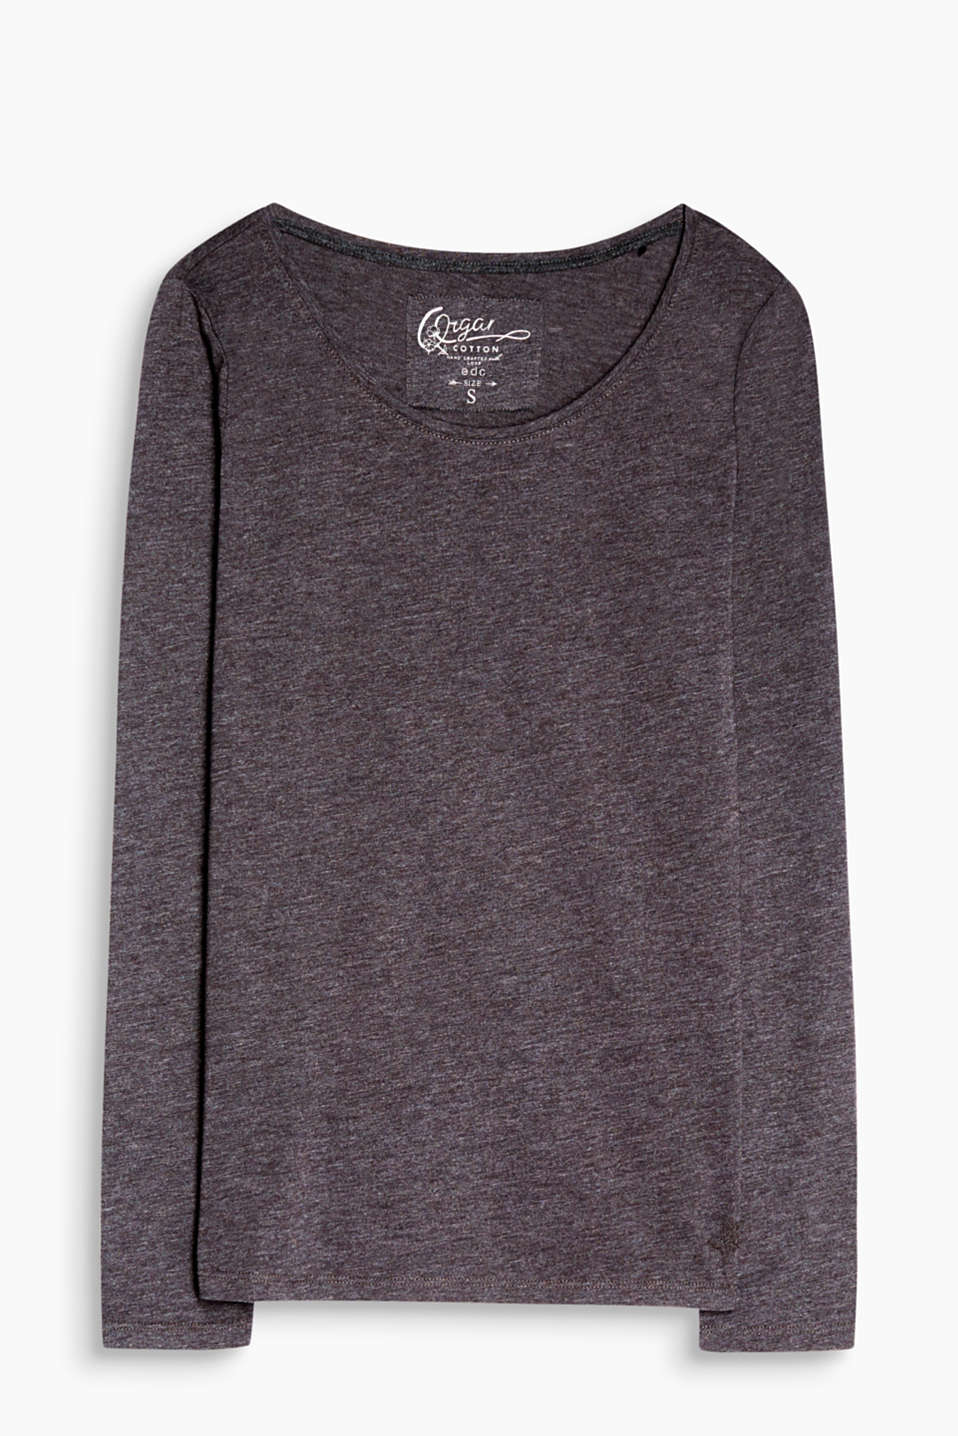 Melange basic long sleeve top with a fitted design and high percentage of organic cotton